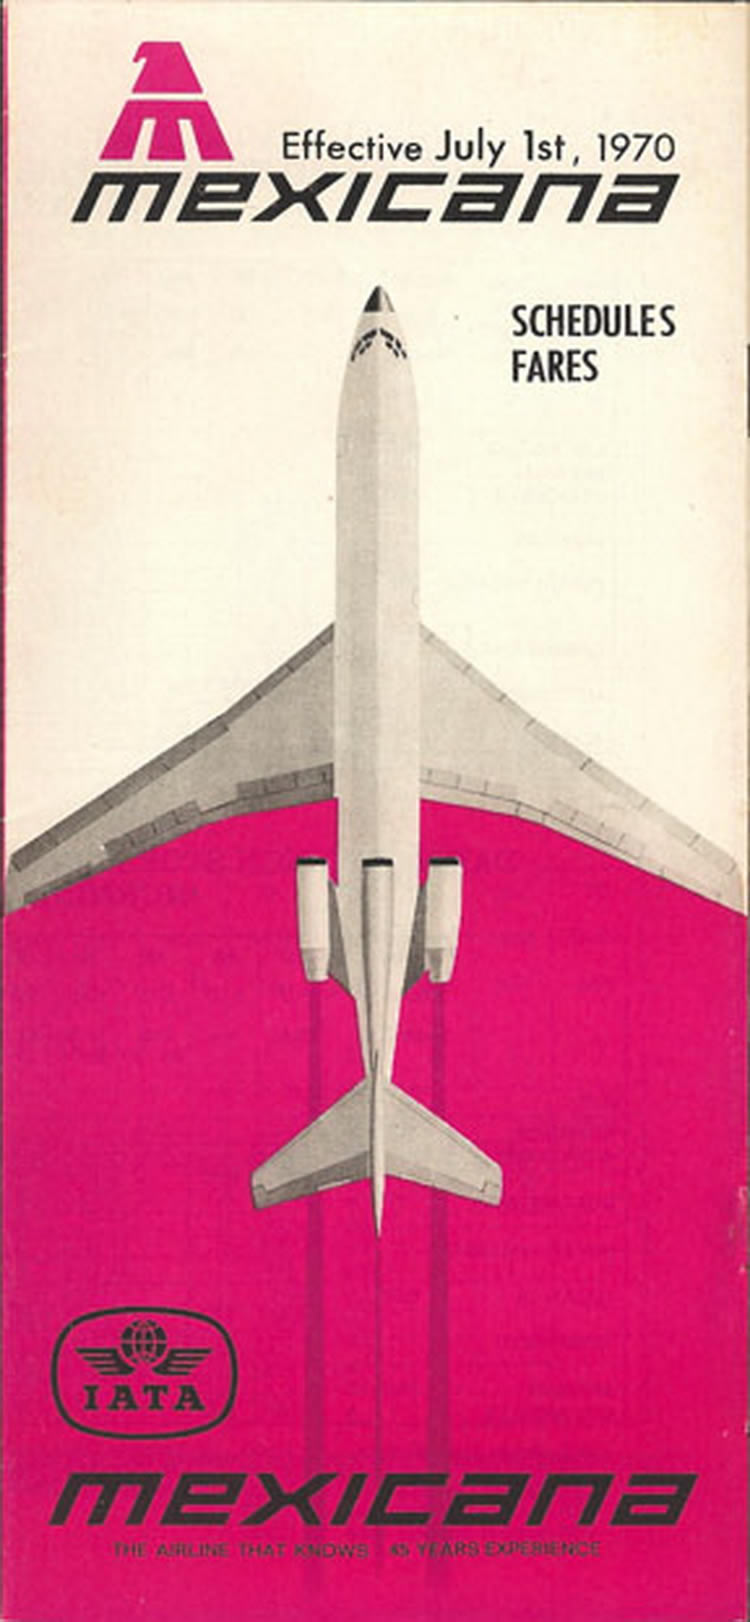 vintage airline timetable for MEXICANA Airlines